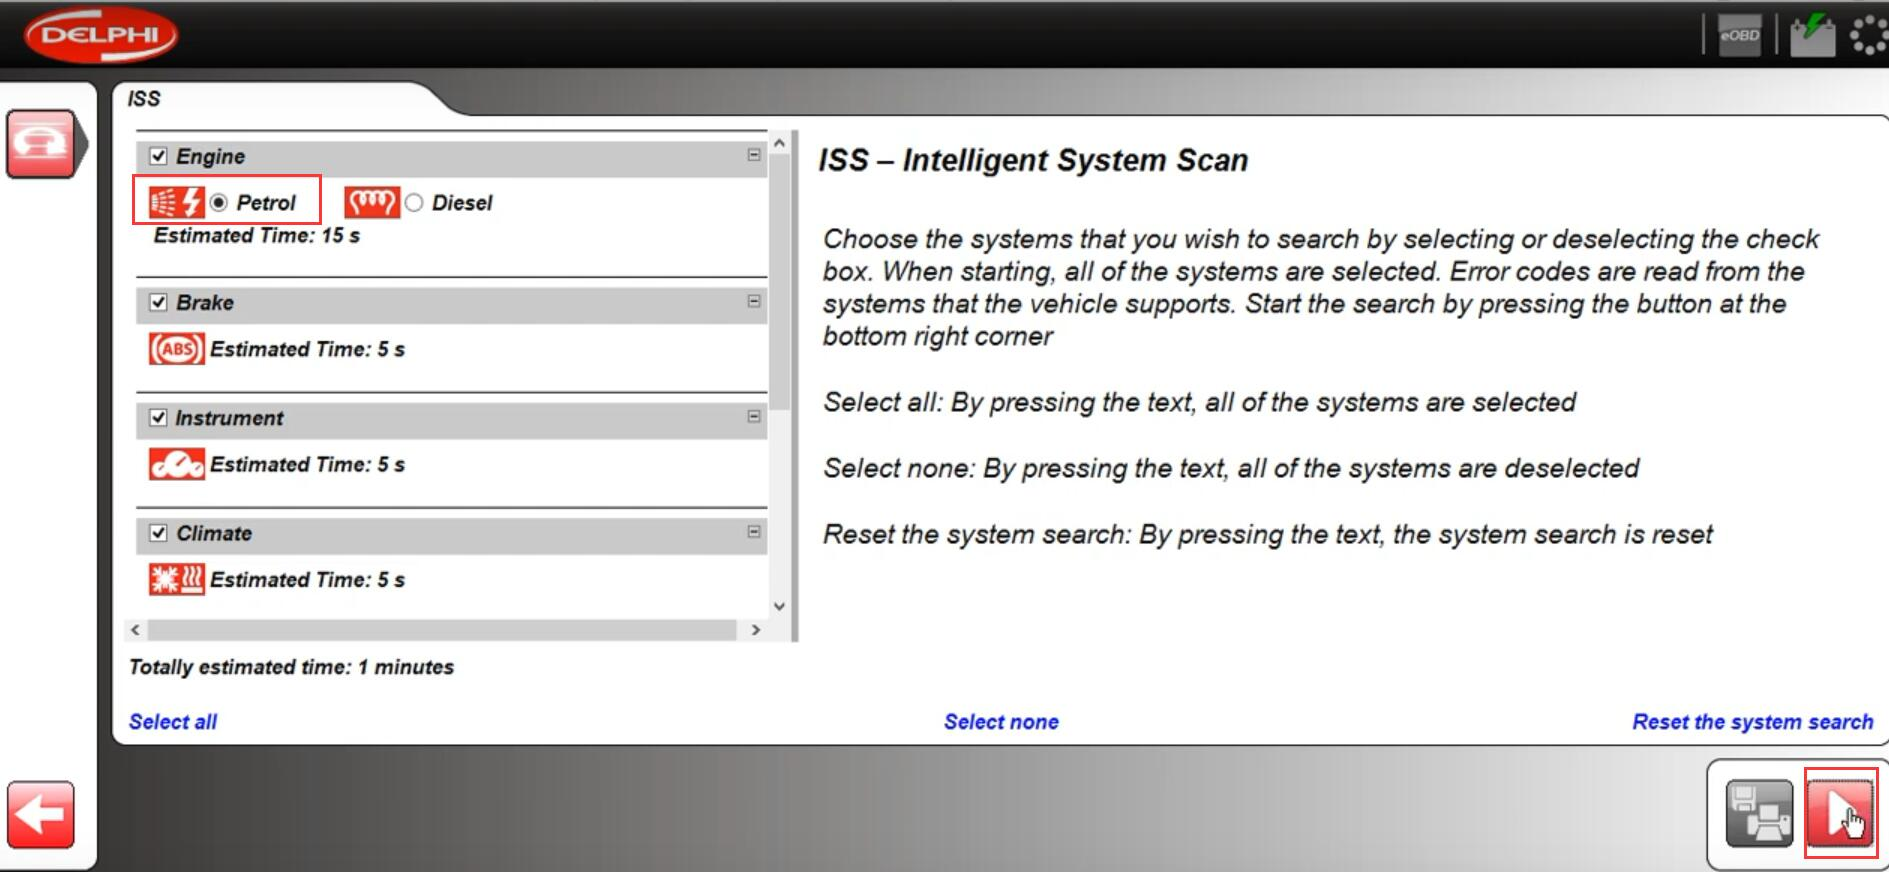 How-to-Scan-ISS-by-Delphi-DS150e-2017-Rev.3-for-2008-Ford-Focus-3